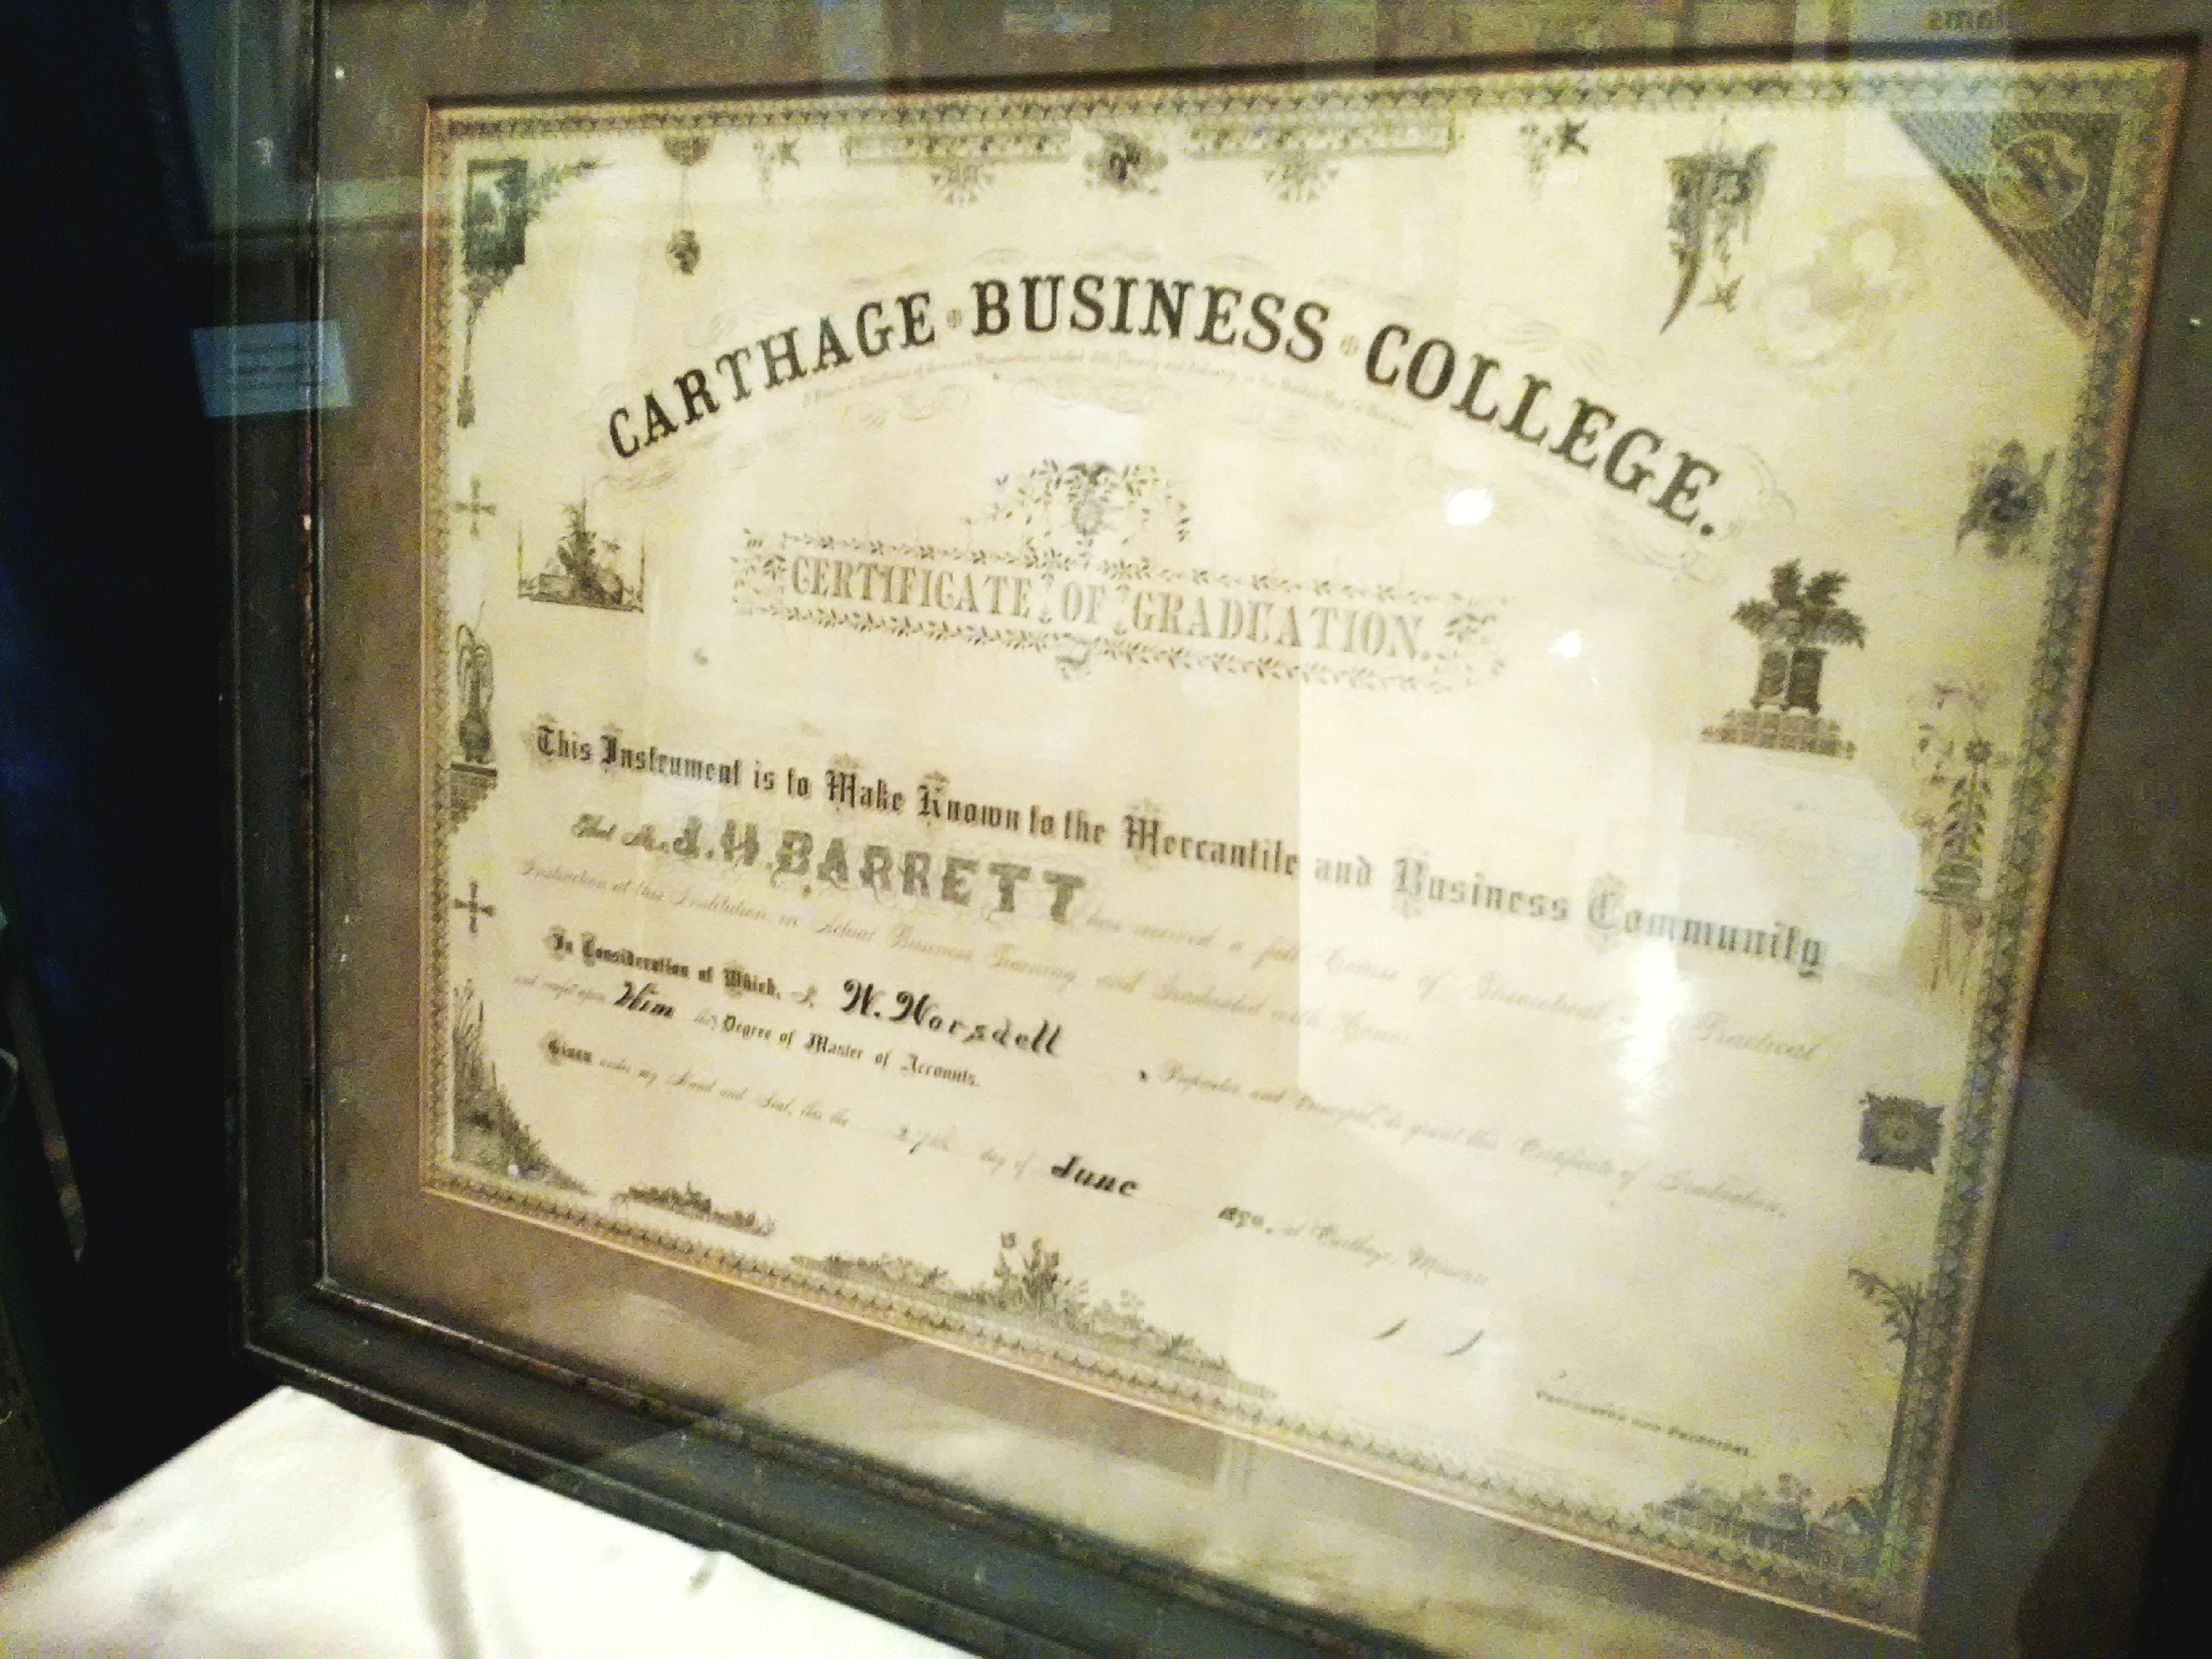 1890 Graduation certificate from Carthage Business College as displayed in the 175th Anniversary of Carthage Exhibit at Powers Museum in 2017. Certificate was awarded to J. H. Barratt by W. Worsdell, Proprietor of the college.